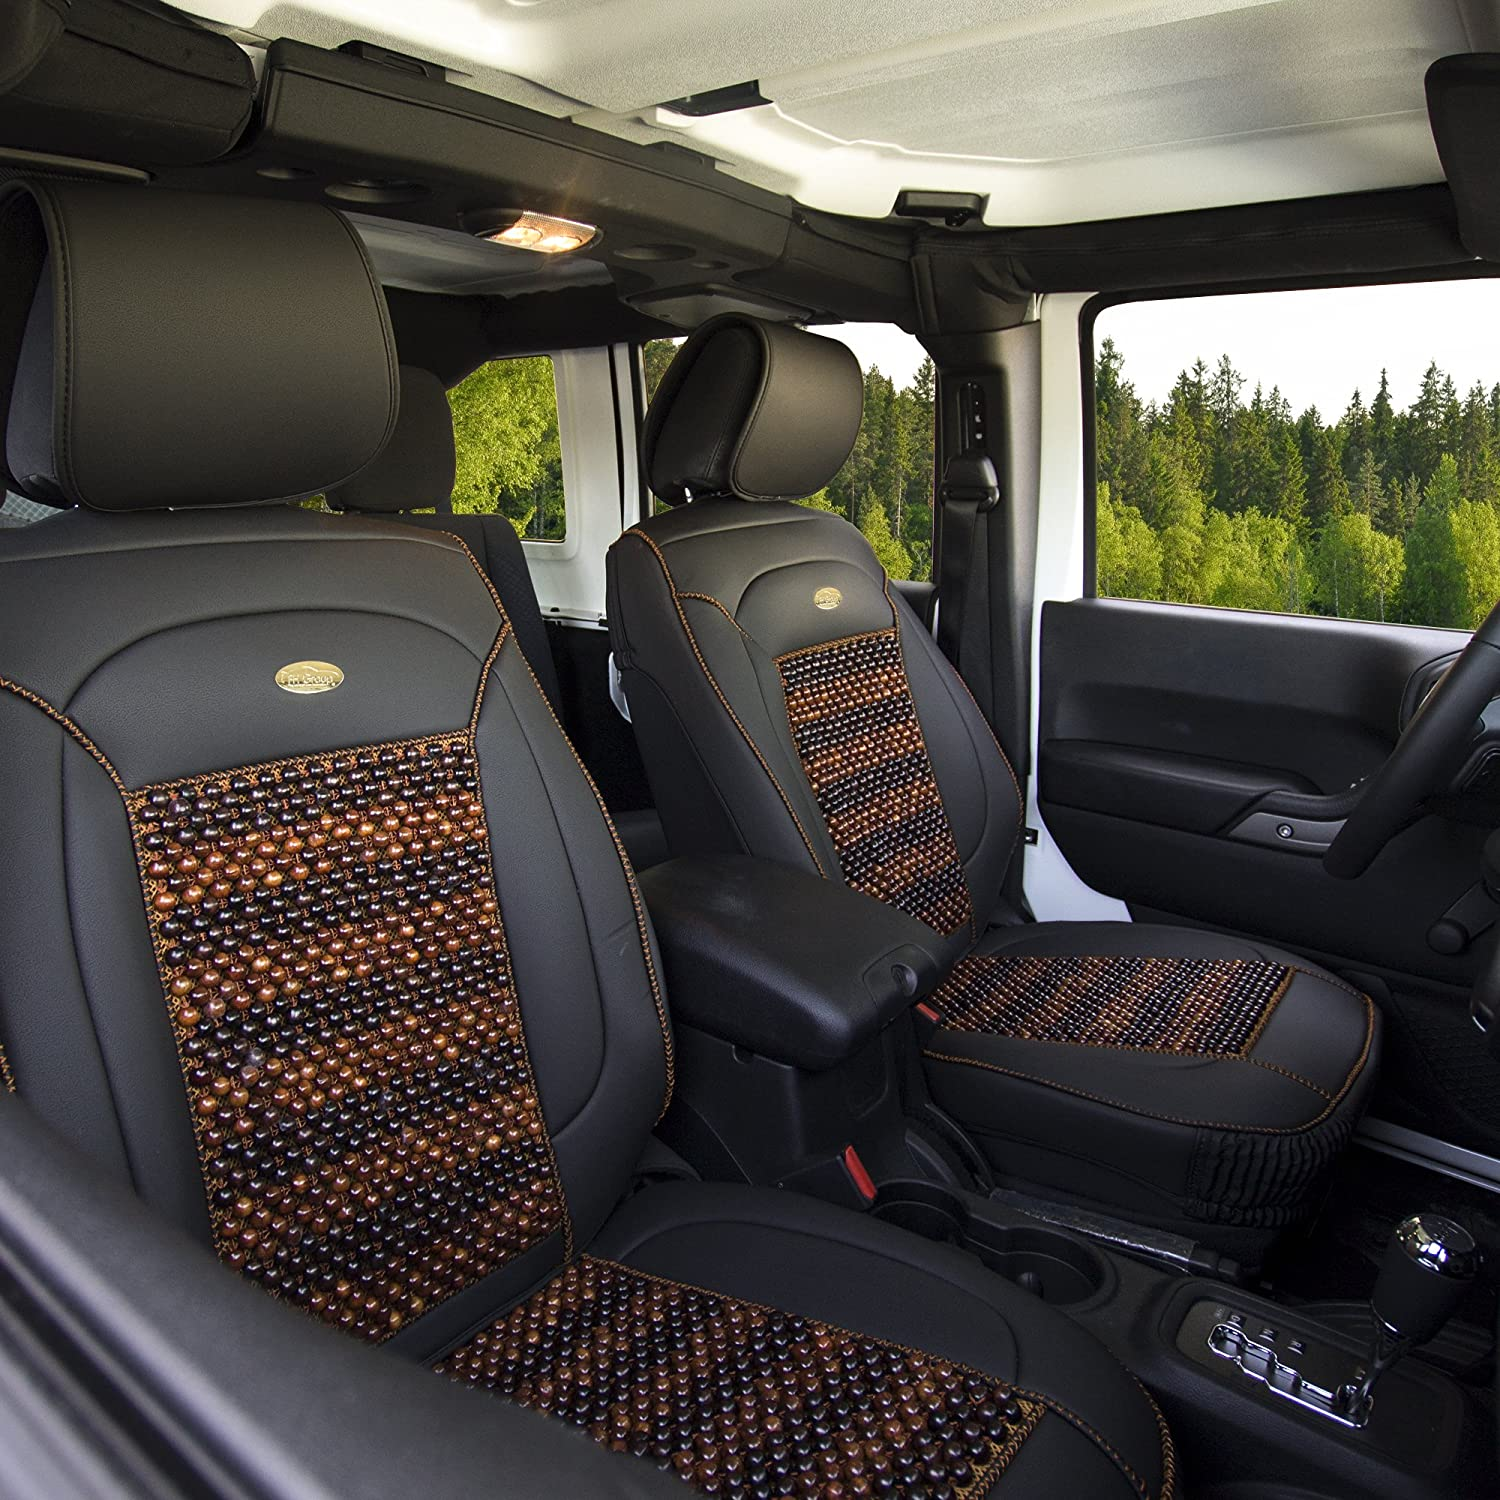 FH Group PU203102 Premium Leather Seat Leather Cushion Pad Seat Covers w. Cooling Rosewood Beads, Black -Fit Most Car, Truck, SUV, or Van